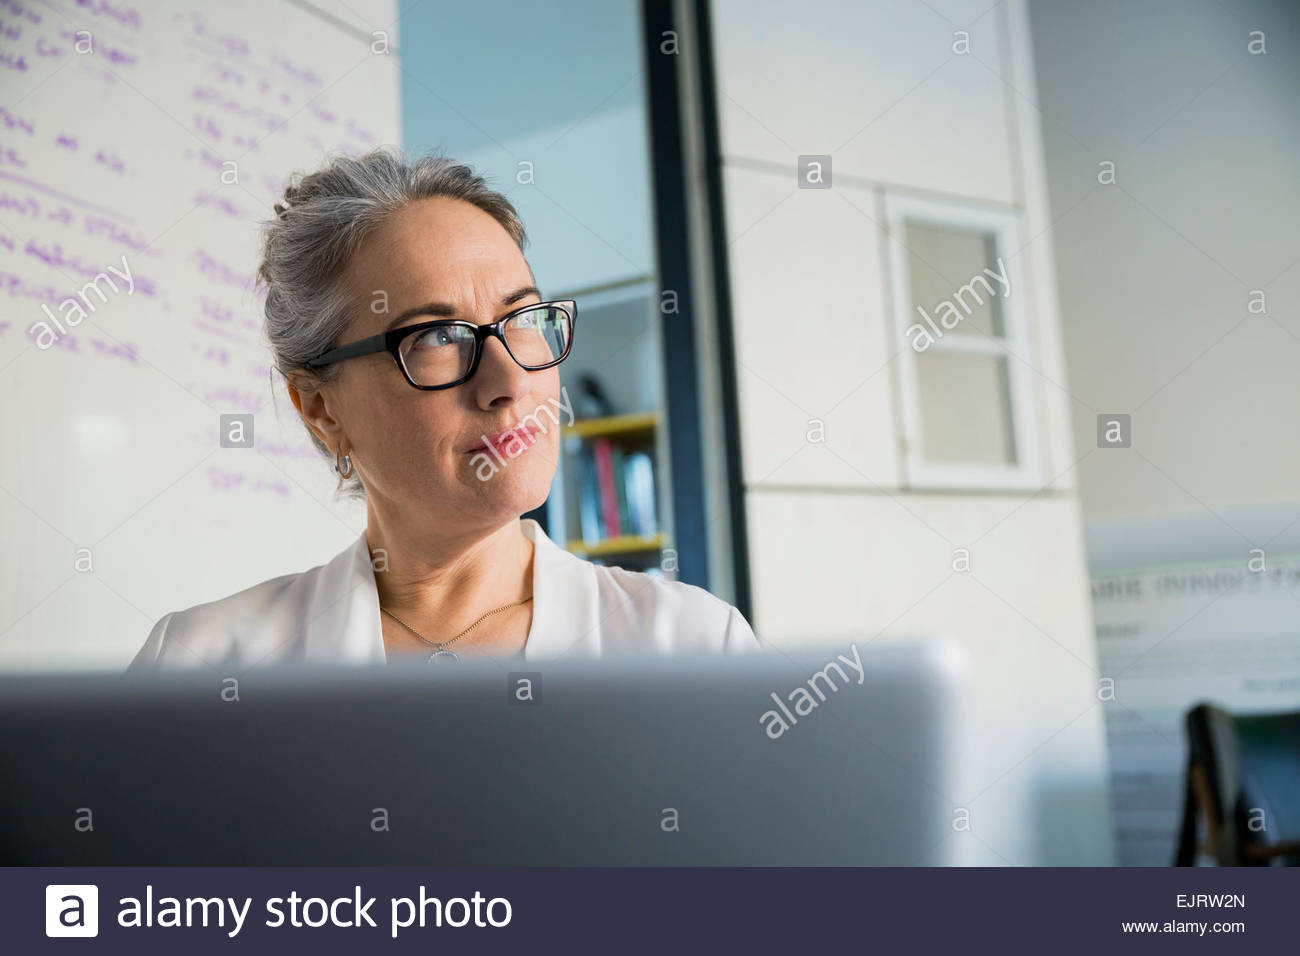 Pensive businesswoman working at laptop - Stock Image